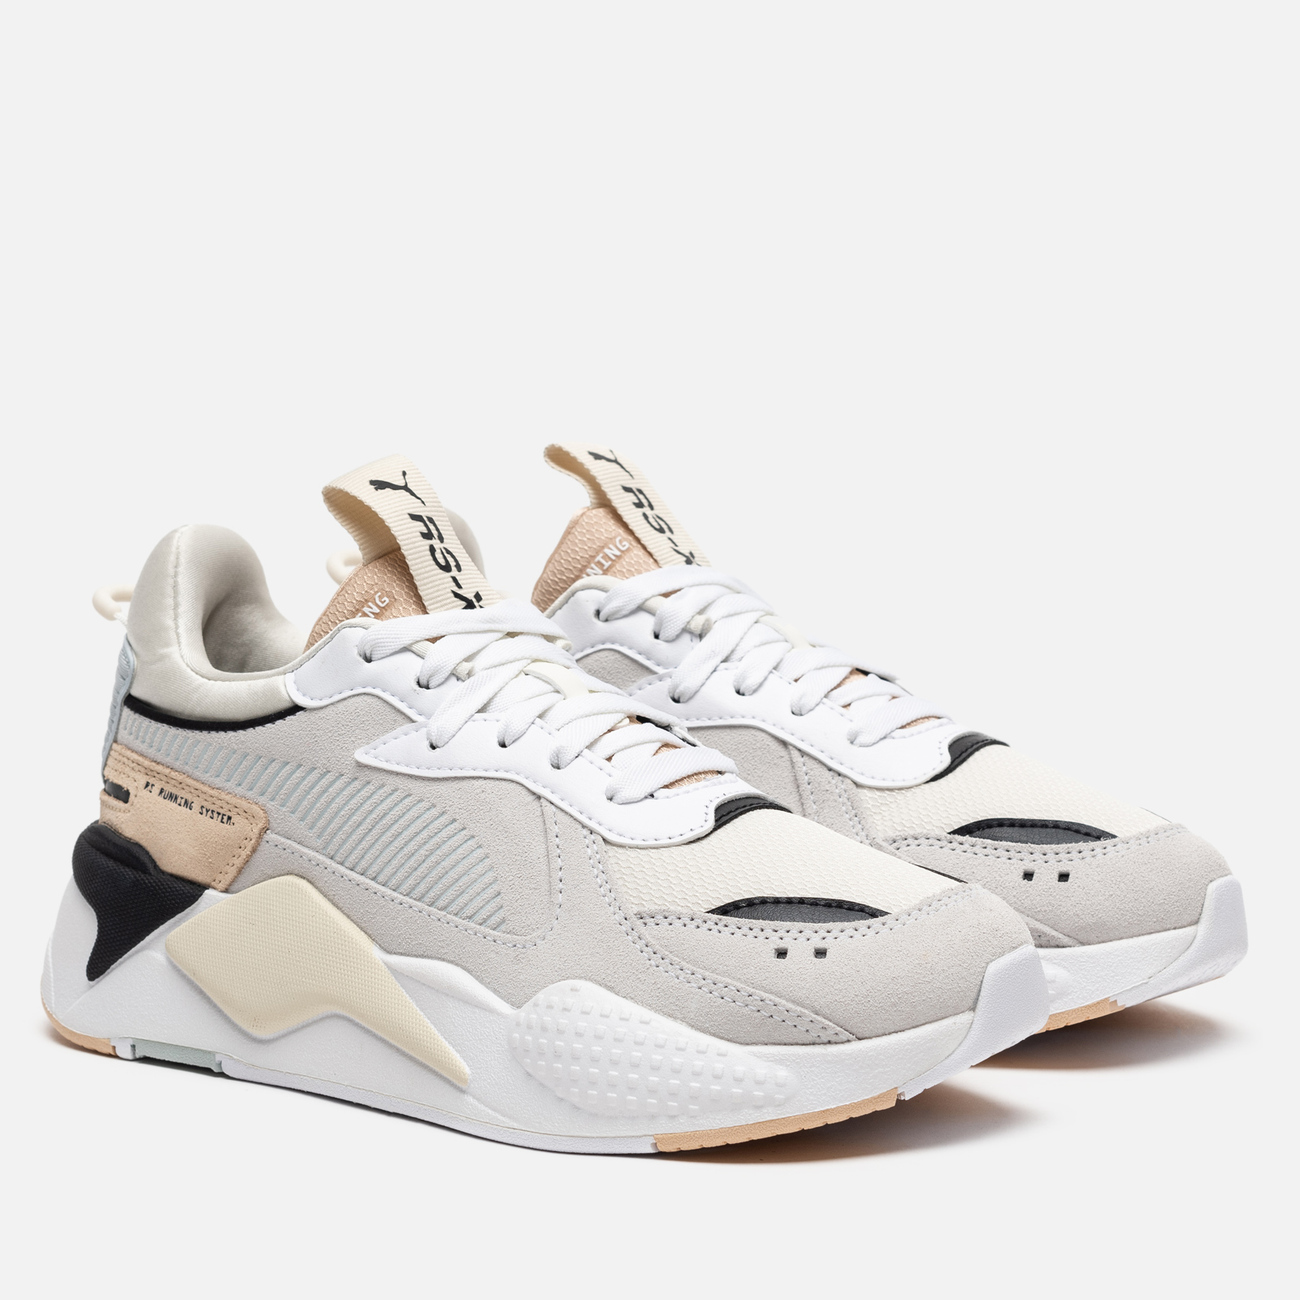 Женские кроссовки Puma RS-X Reinvent White/Natural Vachetta